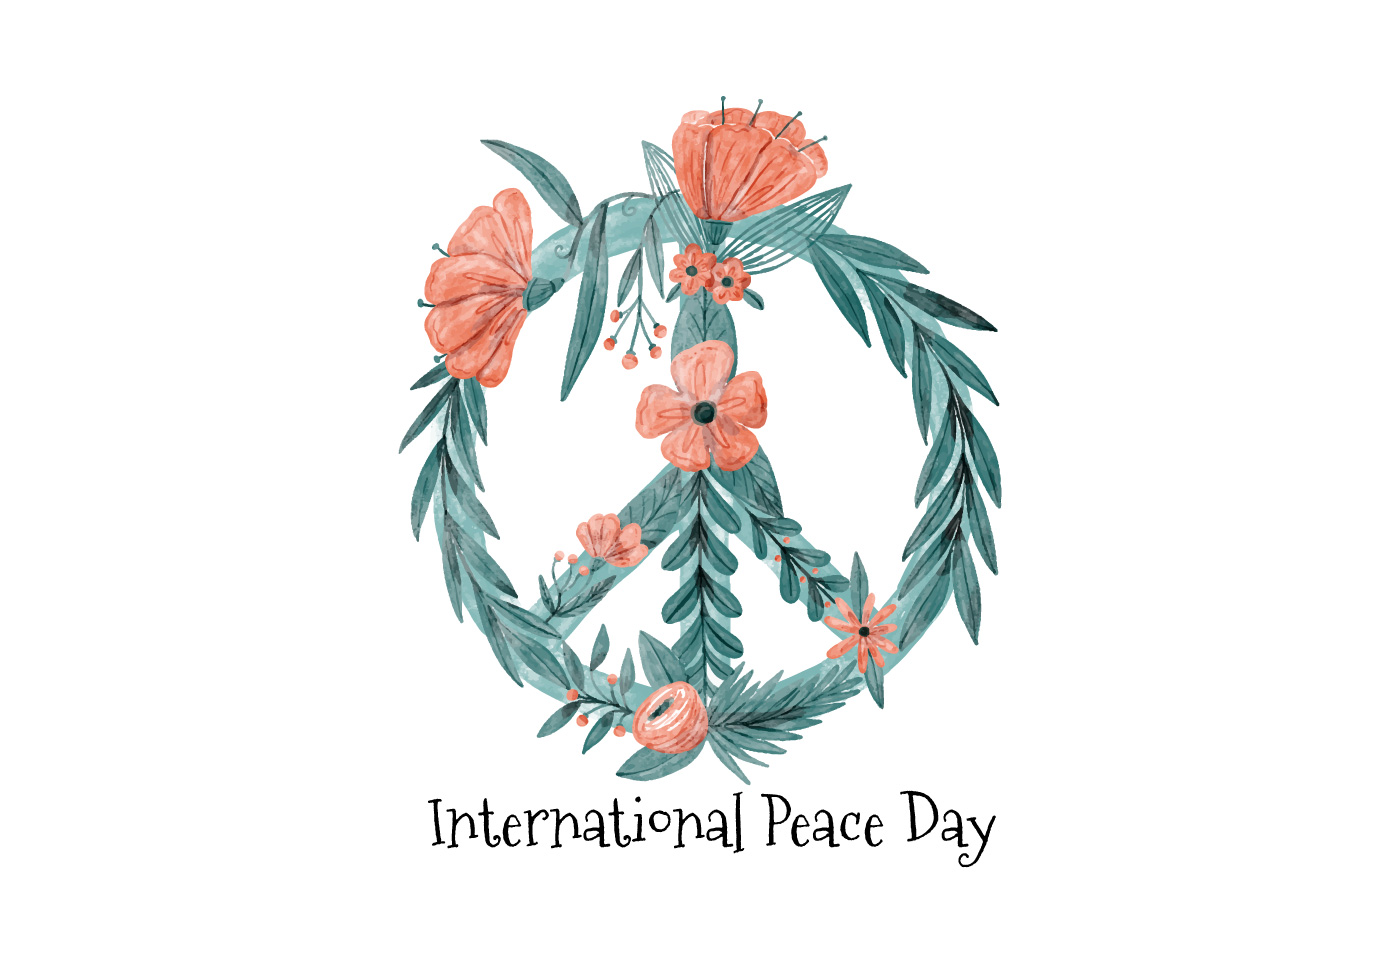 Watercolor Peace Symbol Building With Leaves And Flowers Download